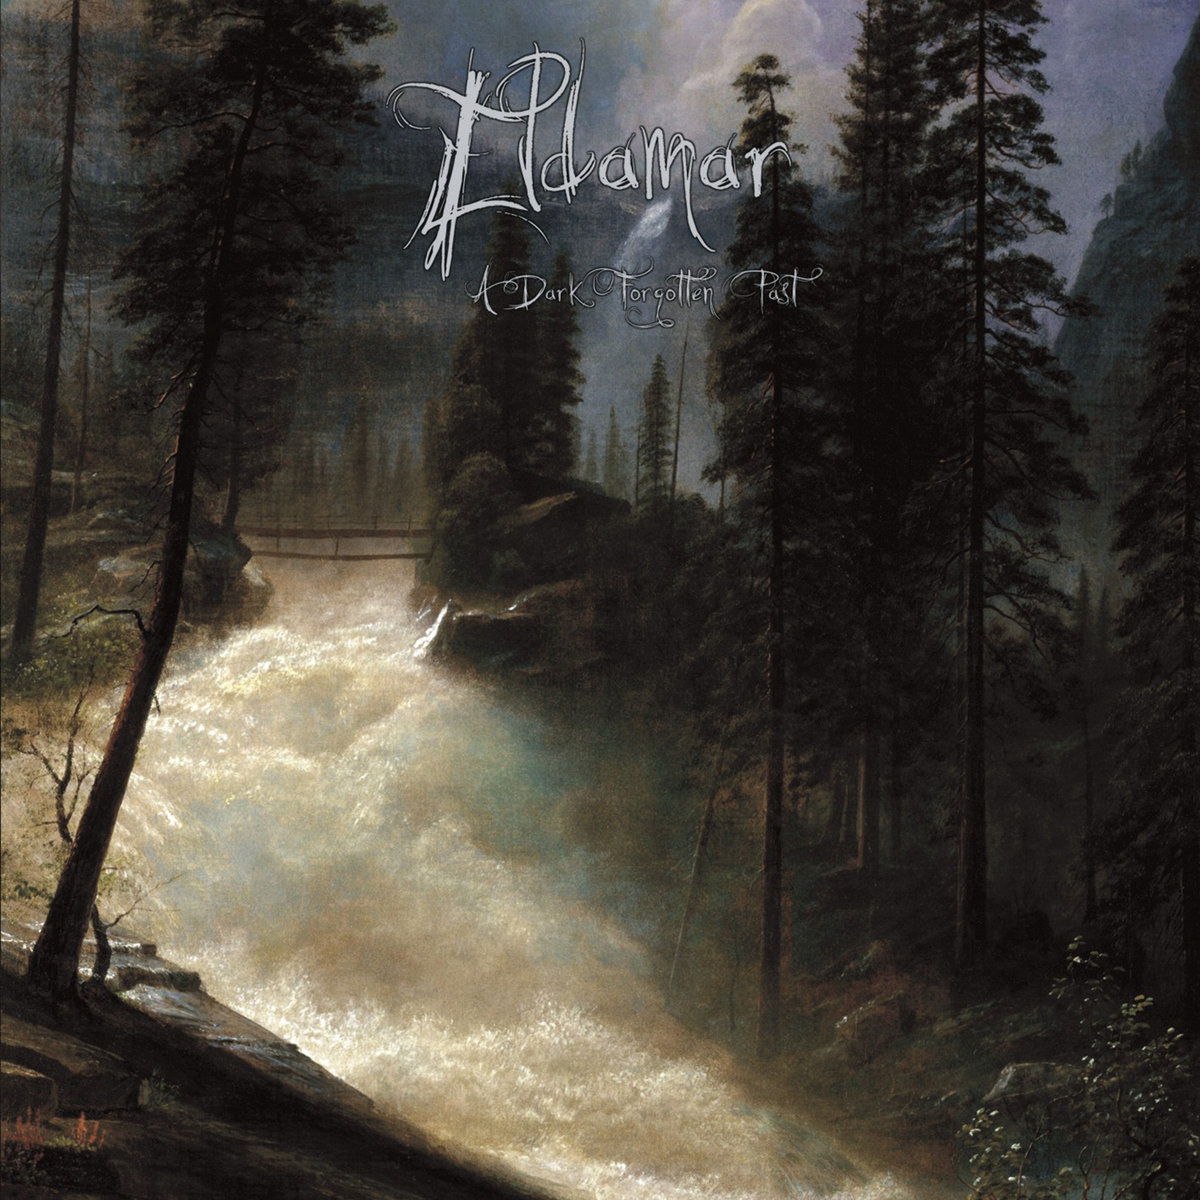 http://www.metalmusicarchives.com/images/covers/eldamar-a-dark-forgotten-past-20171202035215.jpg